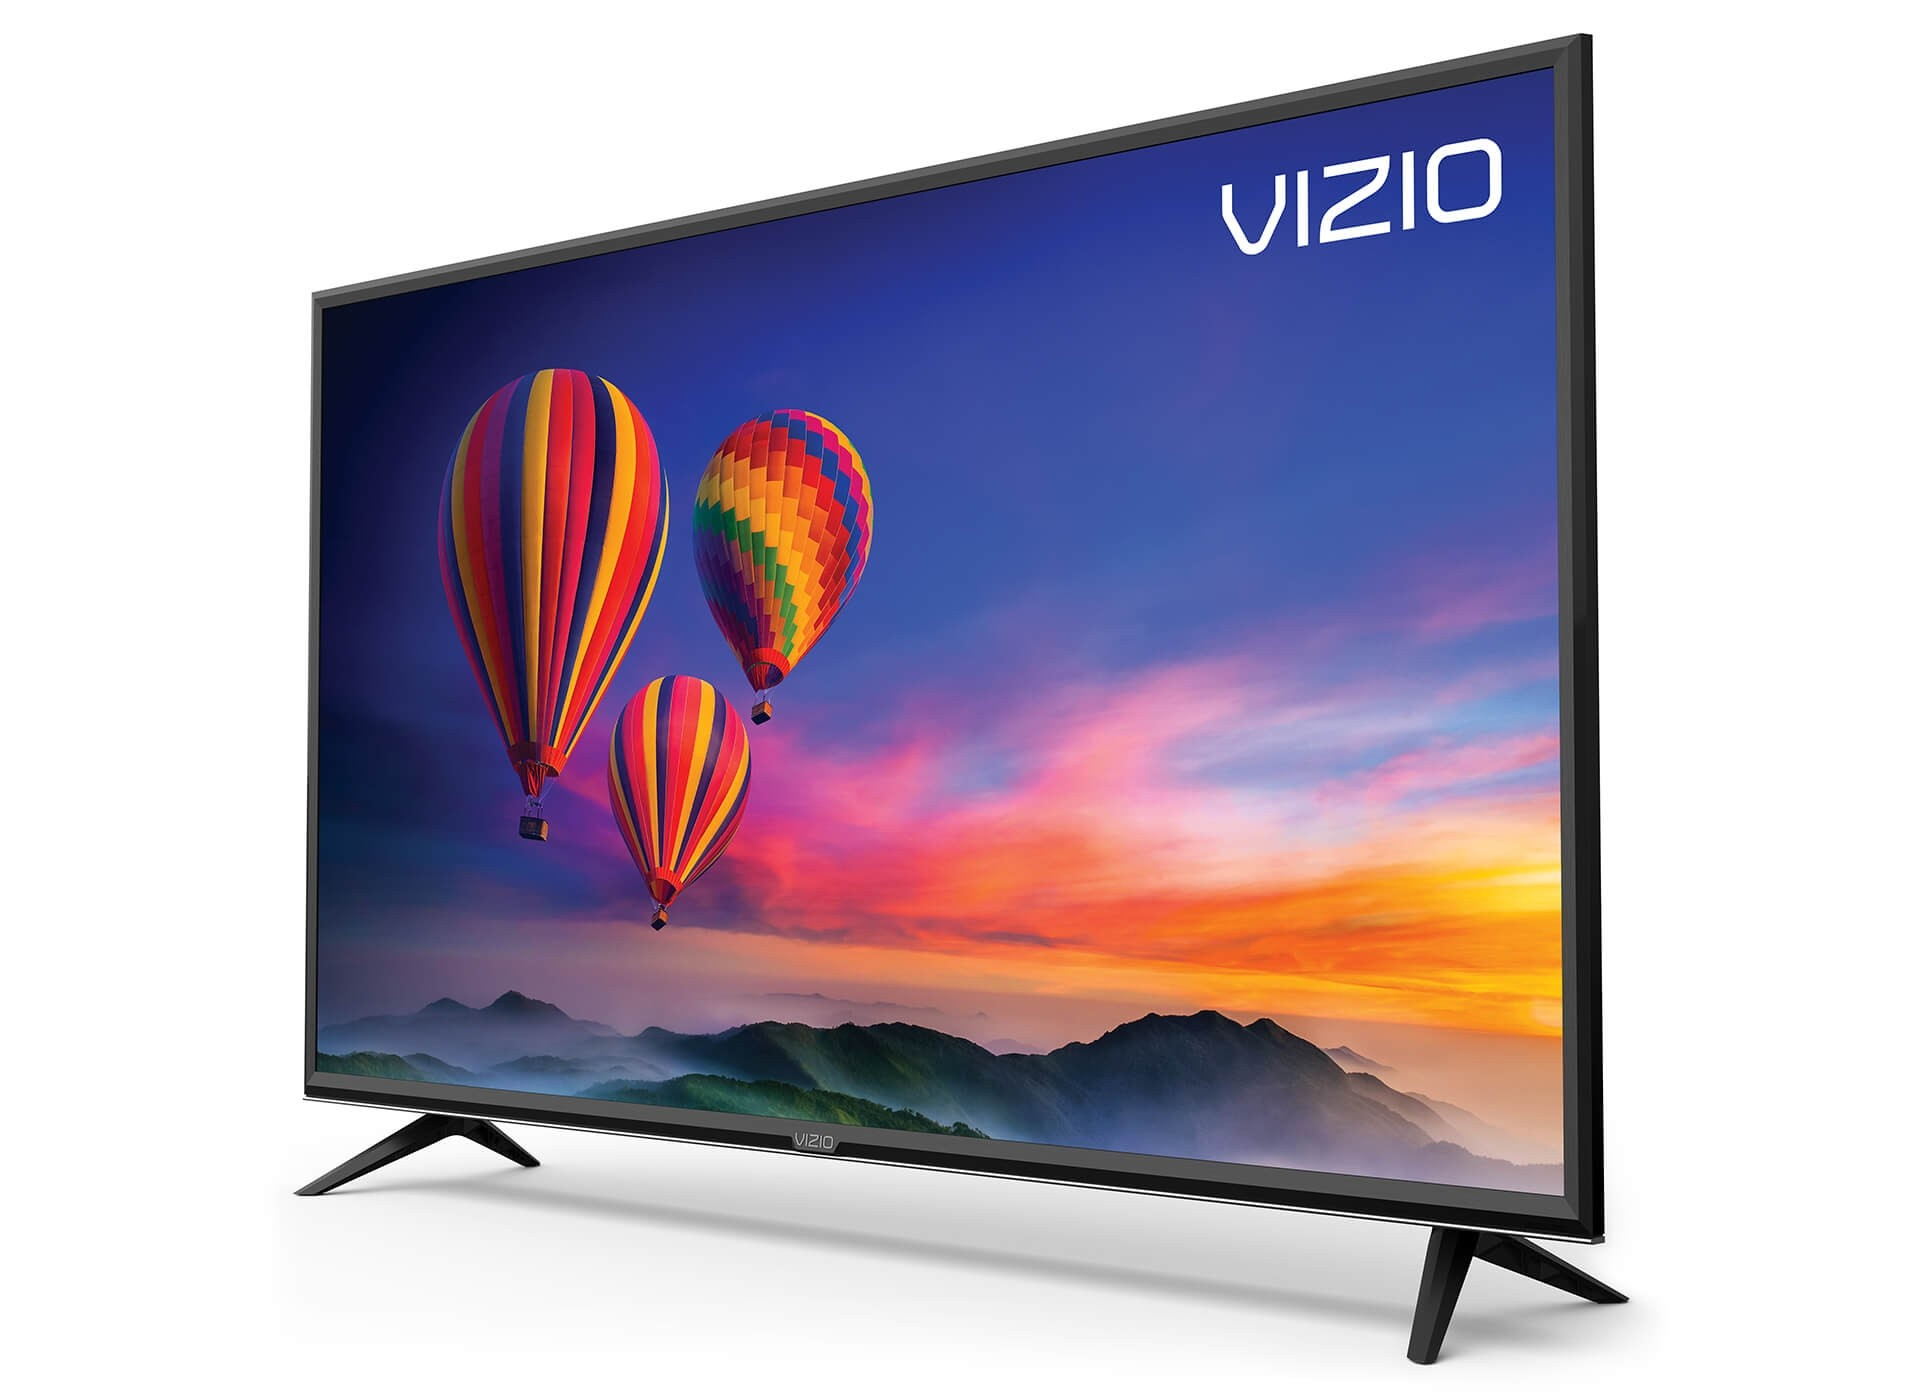 Buy Vizio TV